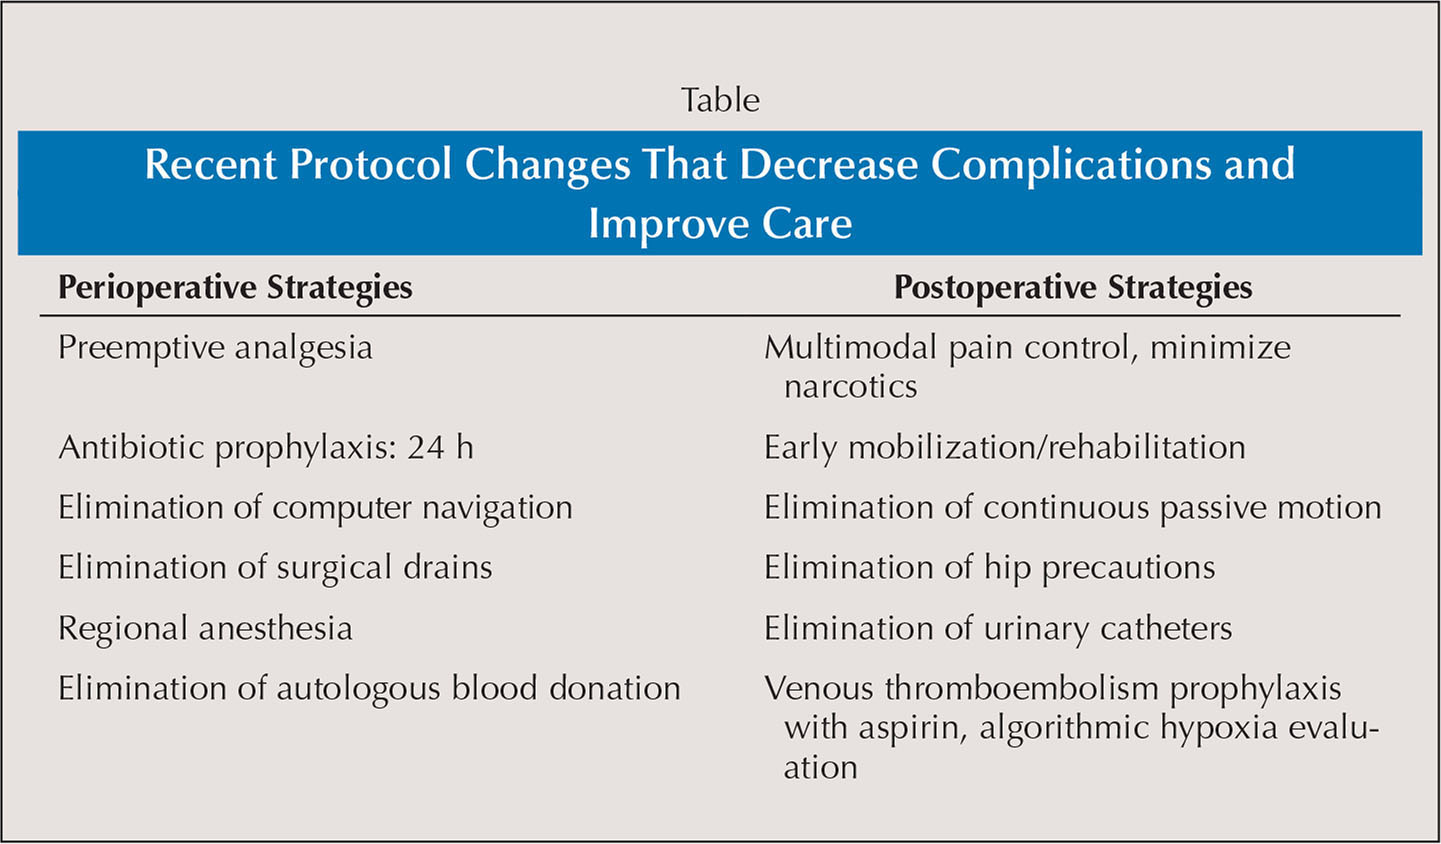 Recent Protocol Changes That Decrease Complications and Improve Care